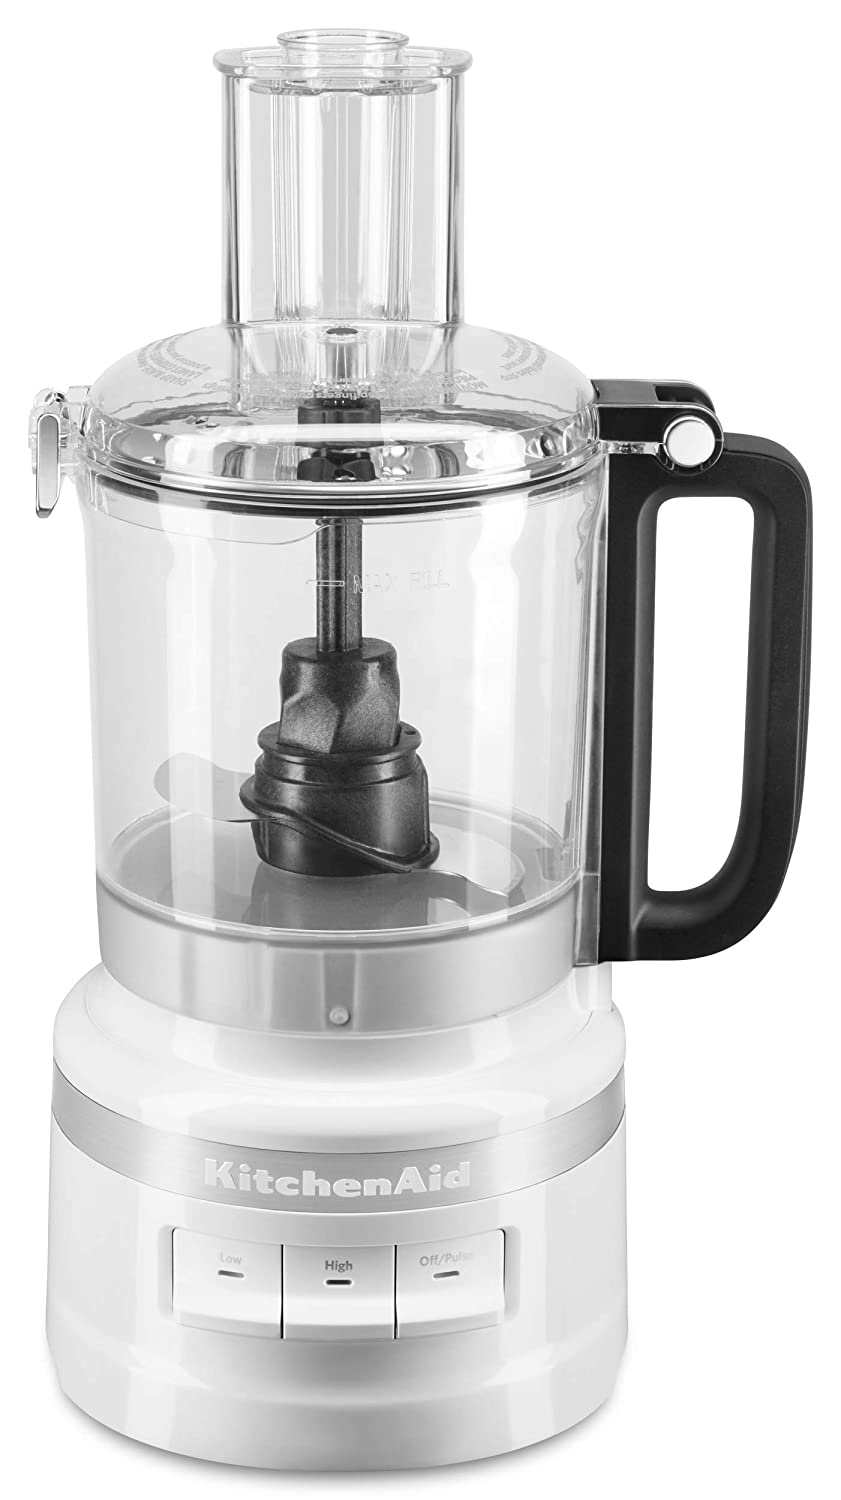 KitchenAid KFP0918WH Easy Store Food Processor 9 Cup White